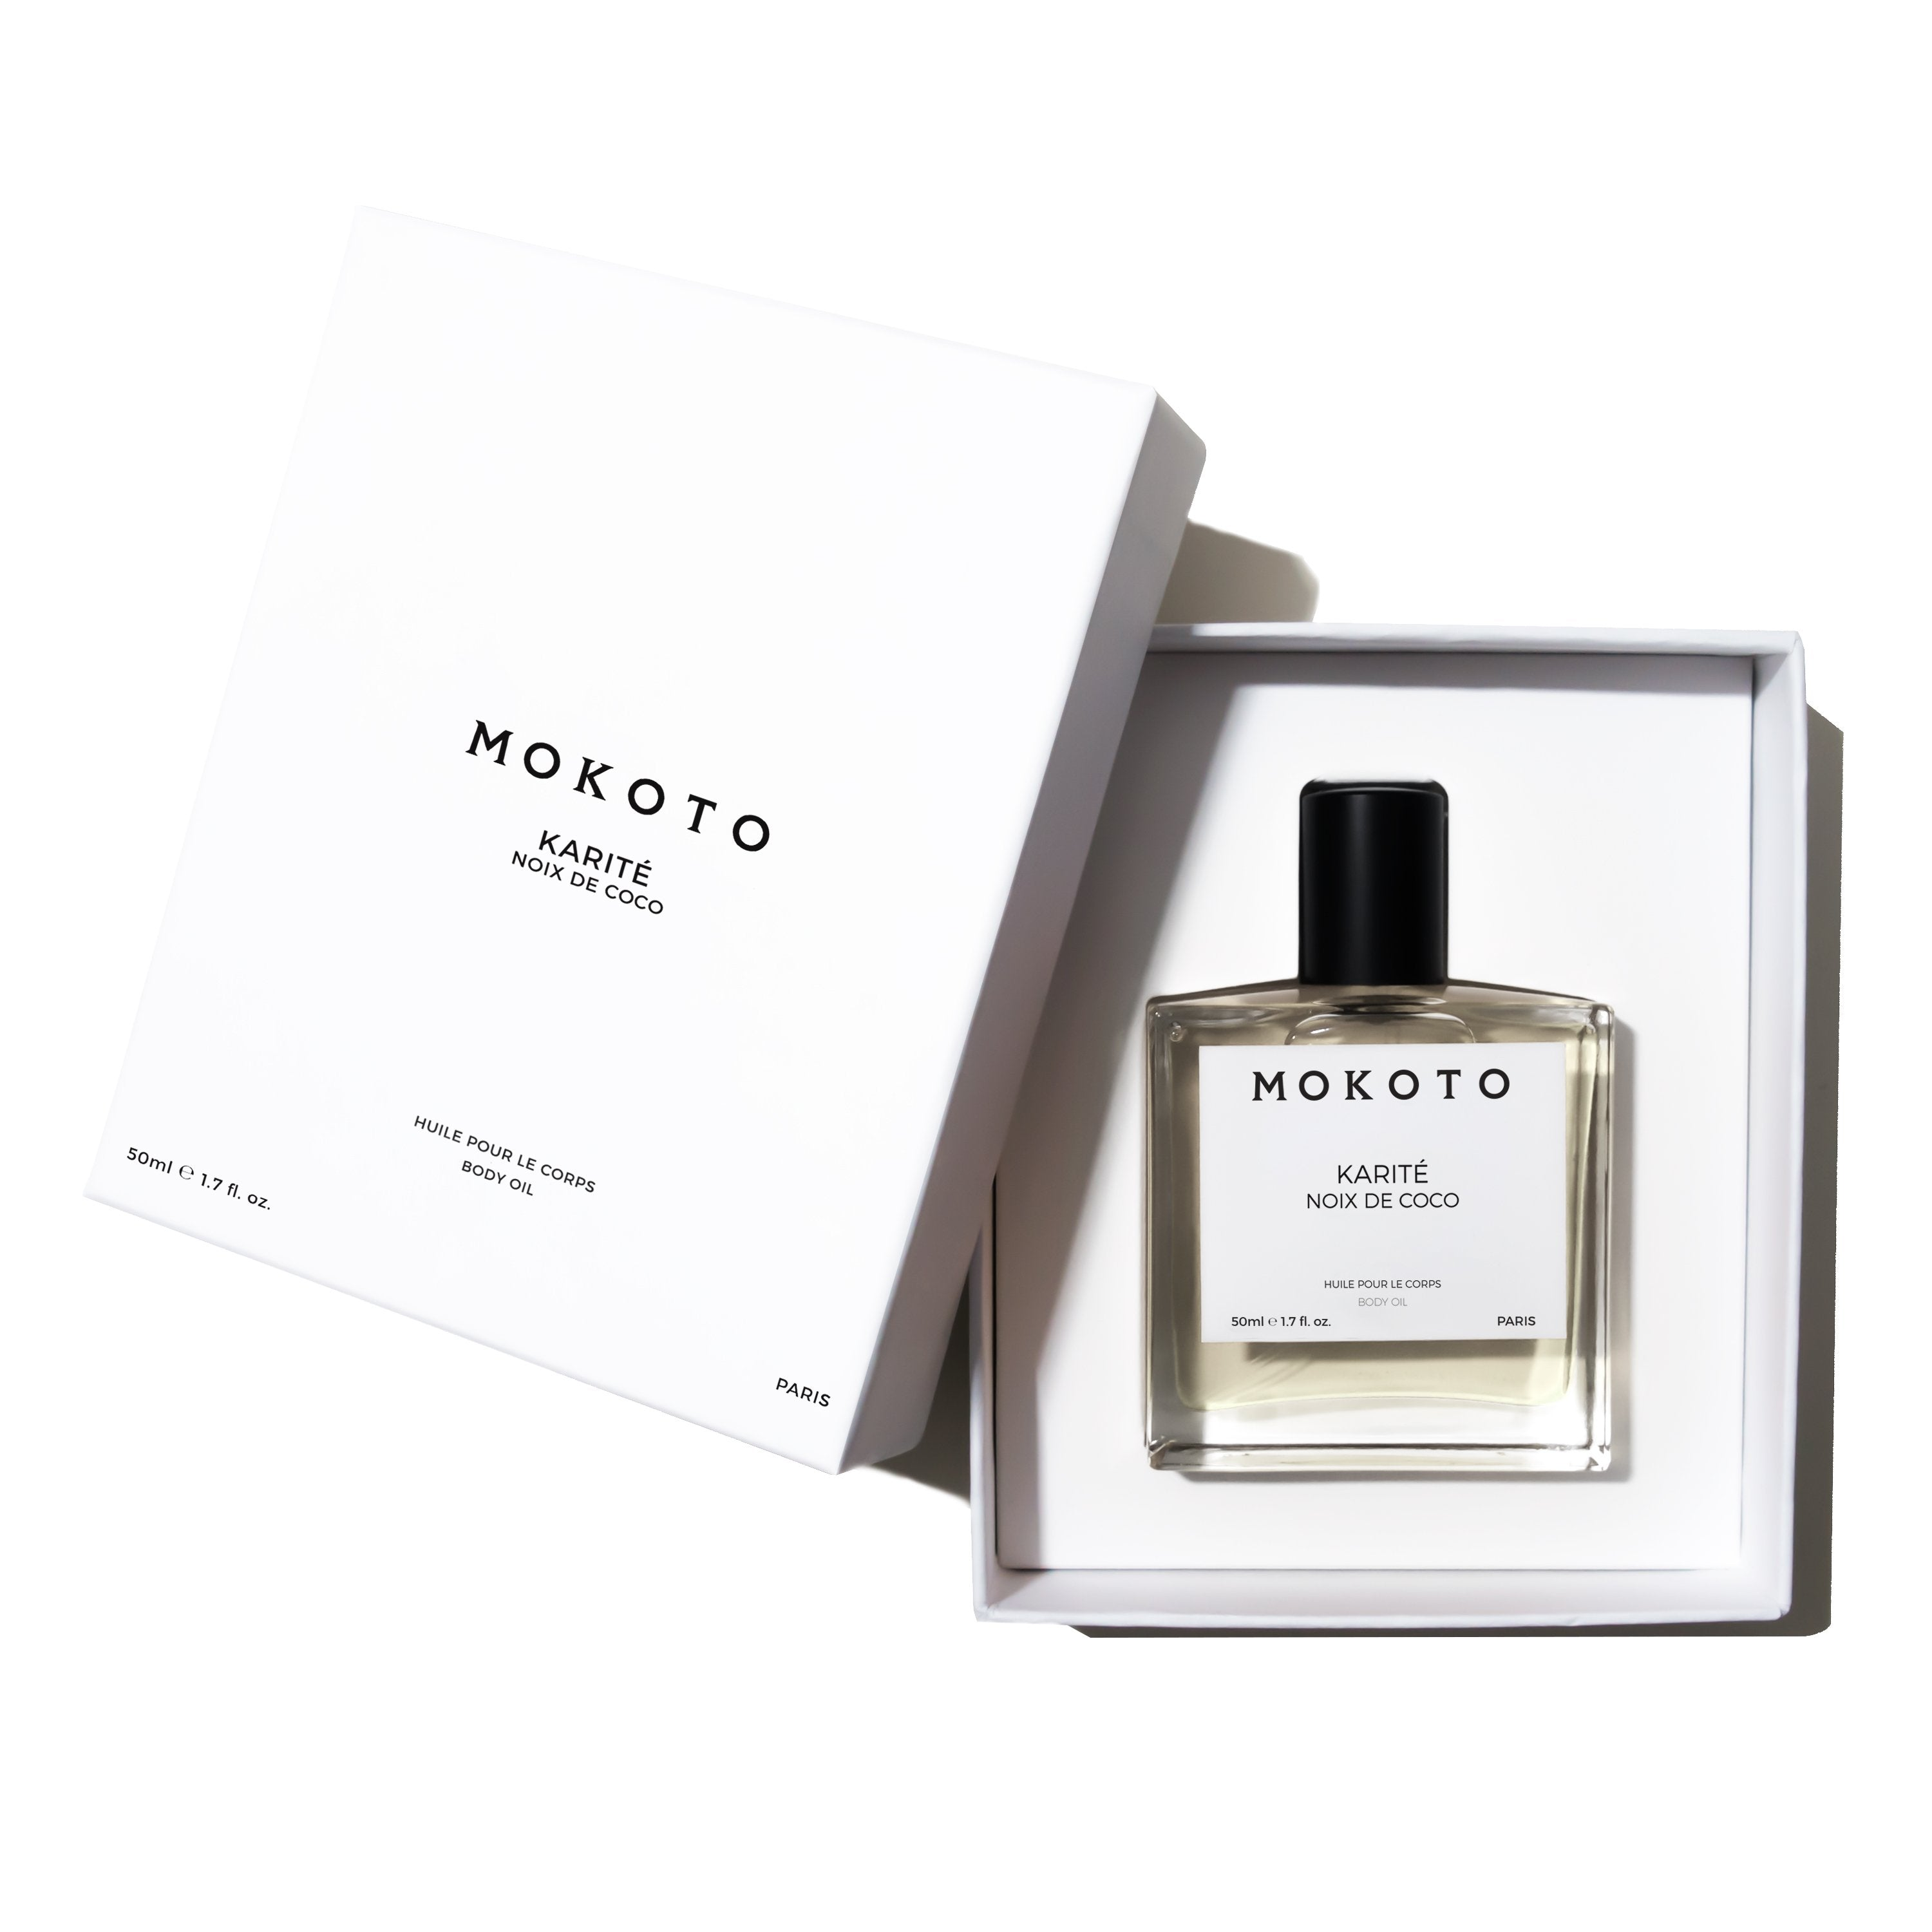 Luxury Karité Coconut Body Oil,Body Oil - MOKOTO